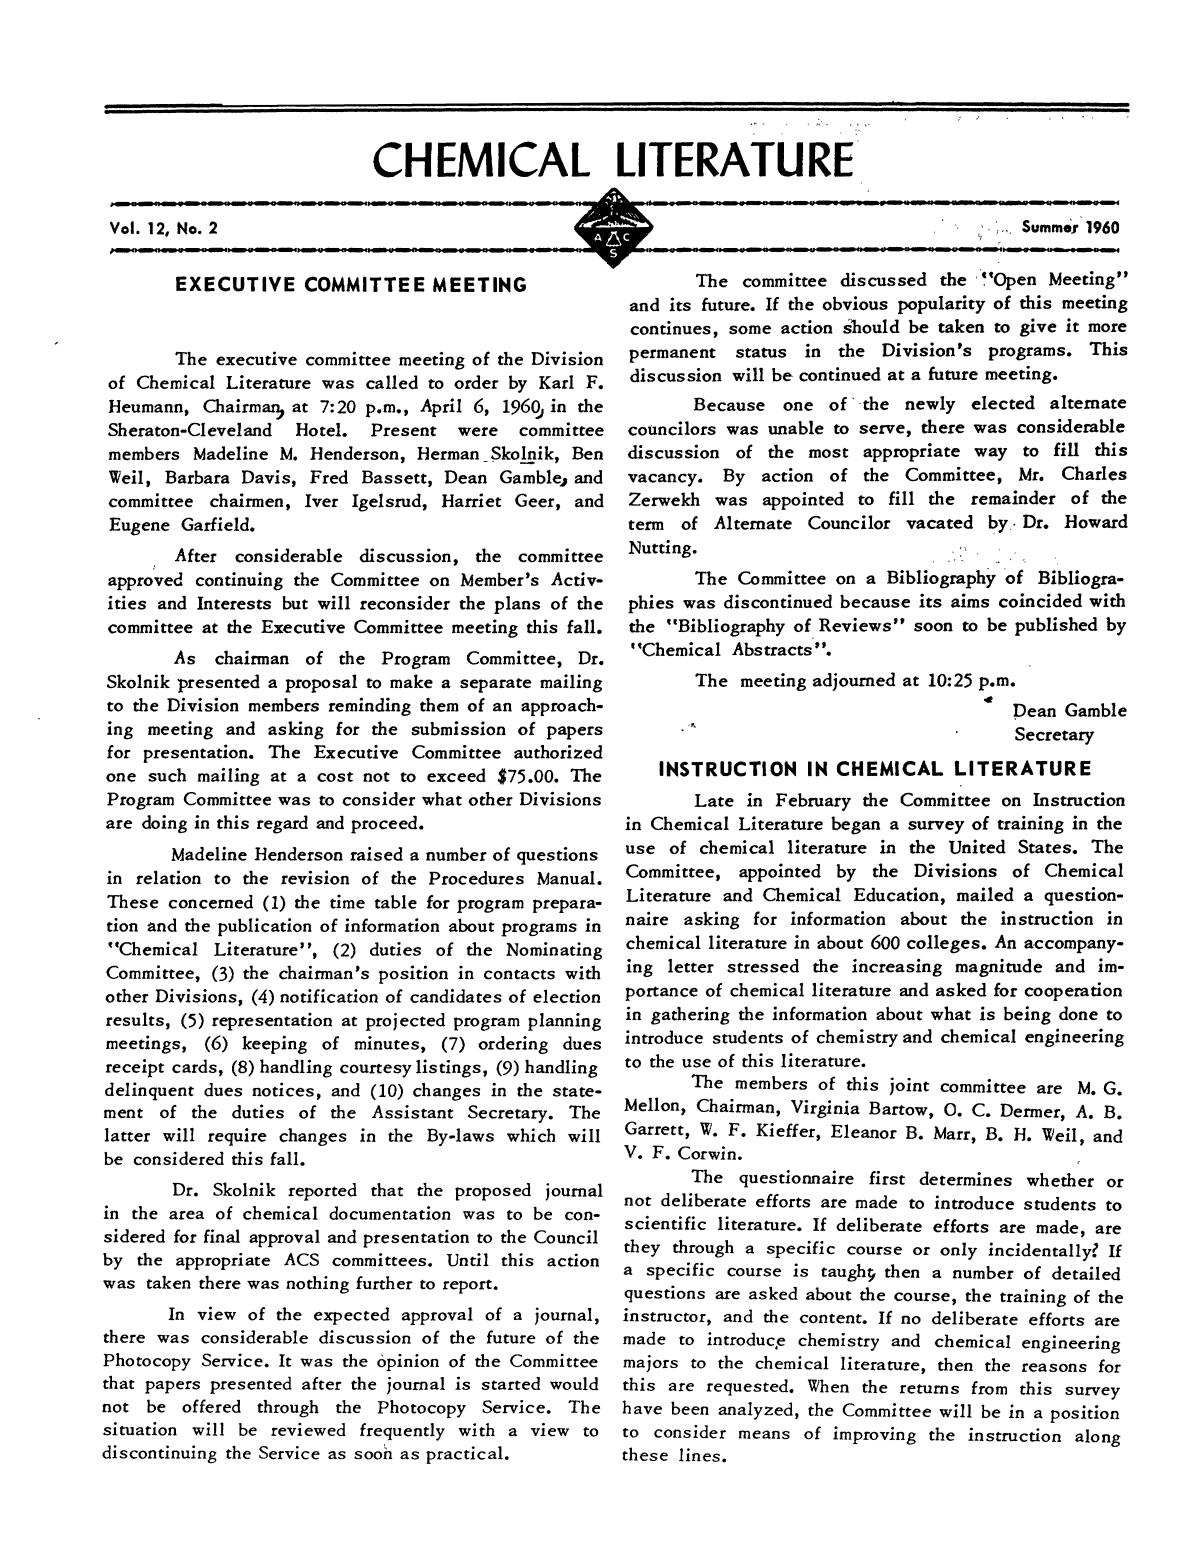 Chemical Literature, Volume 12, Number 2, Summer 1960                                                                                                      1